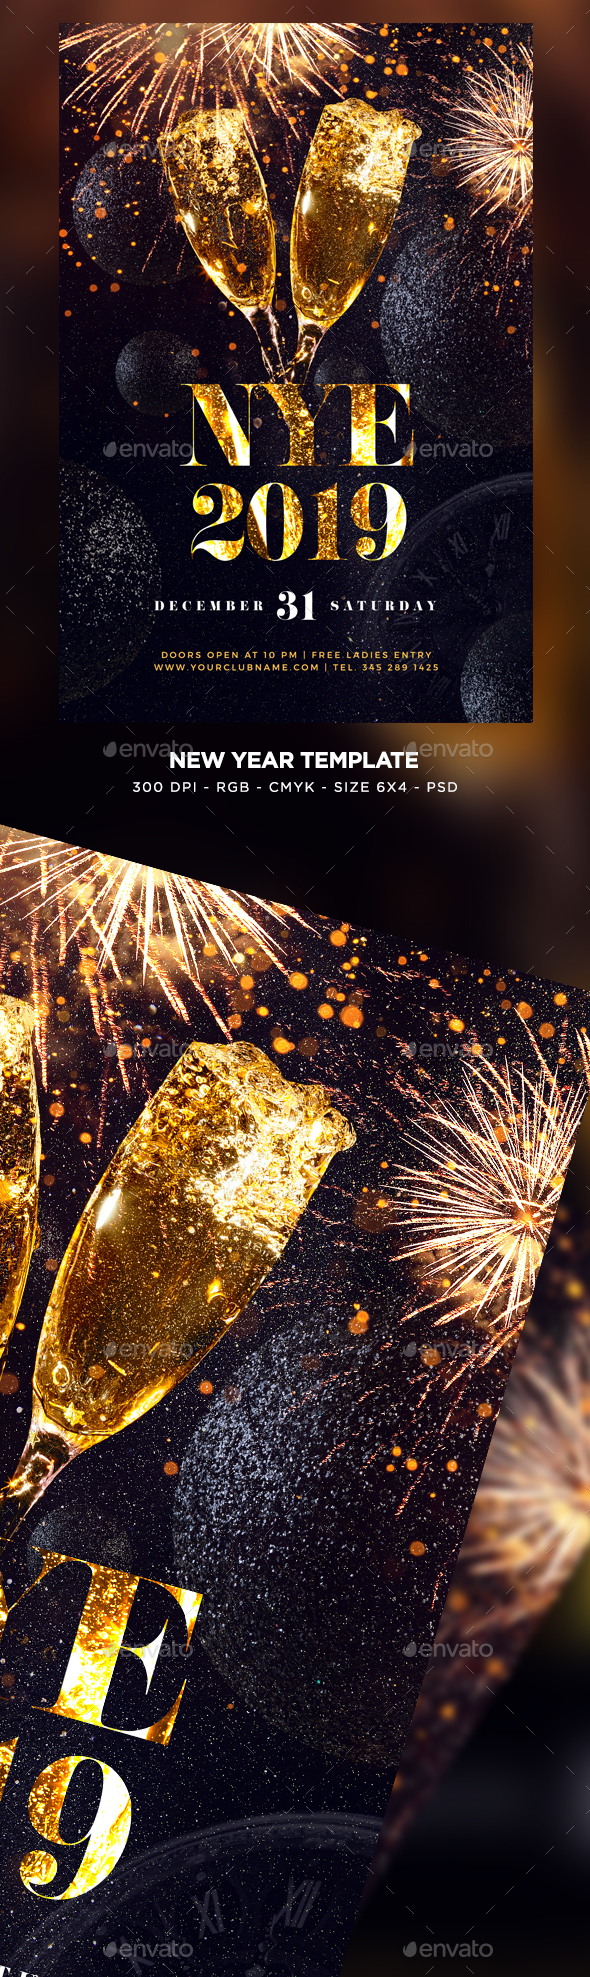 New Year 2019 Flyer - Clubs & Parties Events